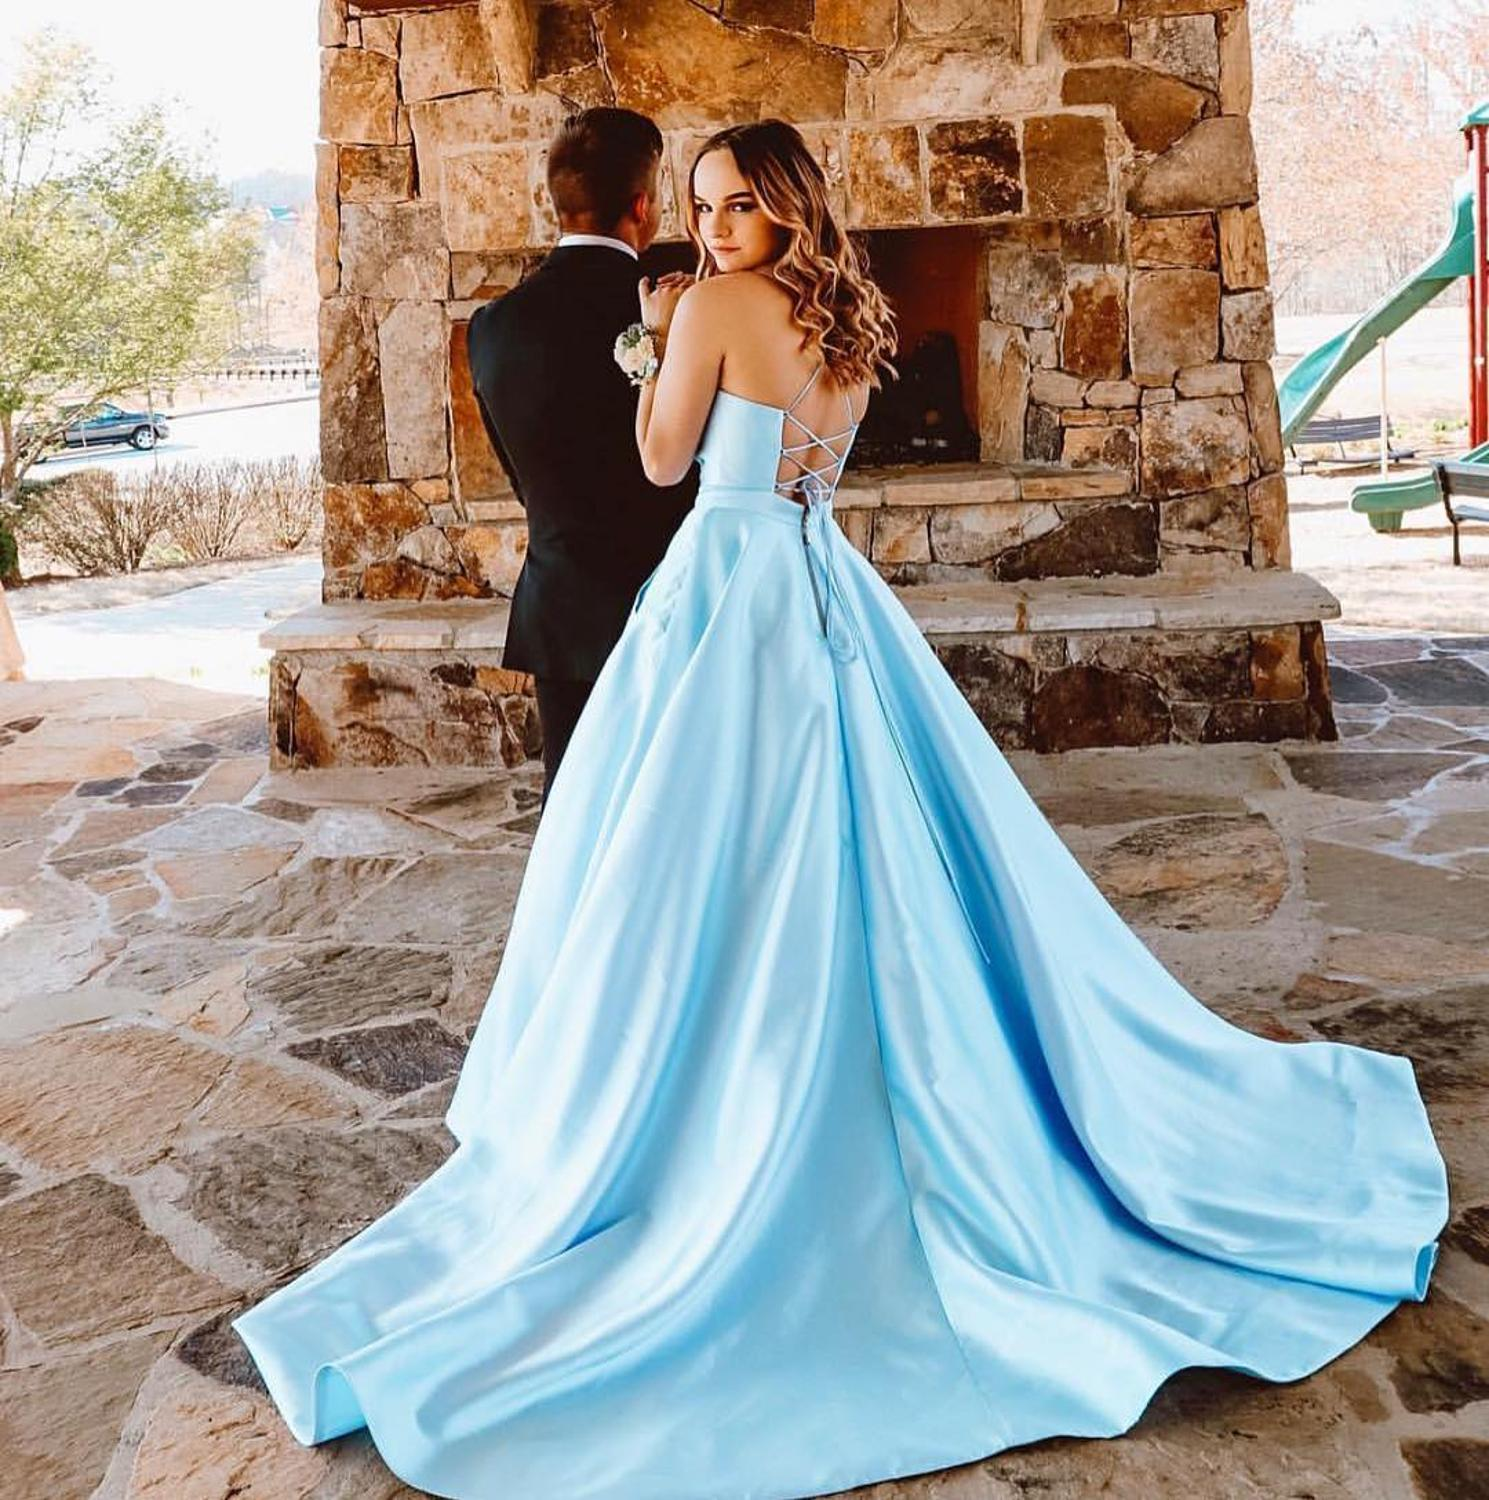 HONGFUYU Satin V-neck Ball Gown   Prom     Dresses   with Lace Up Back Sleeveless robe de soiree Party Evening   Dress   Backless Pockets